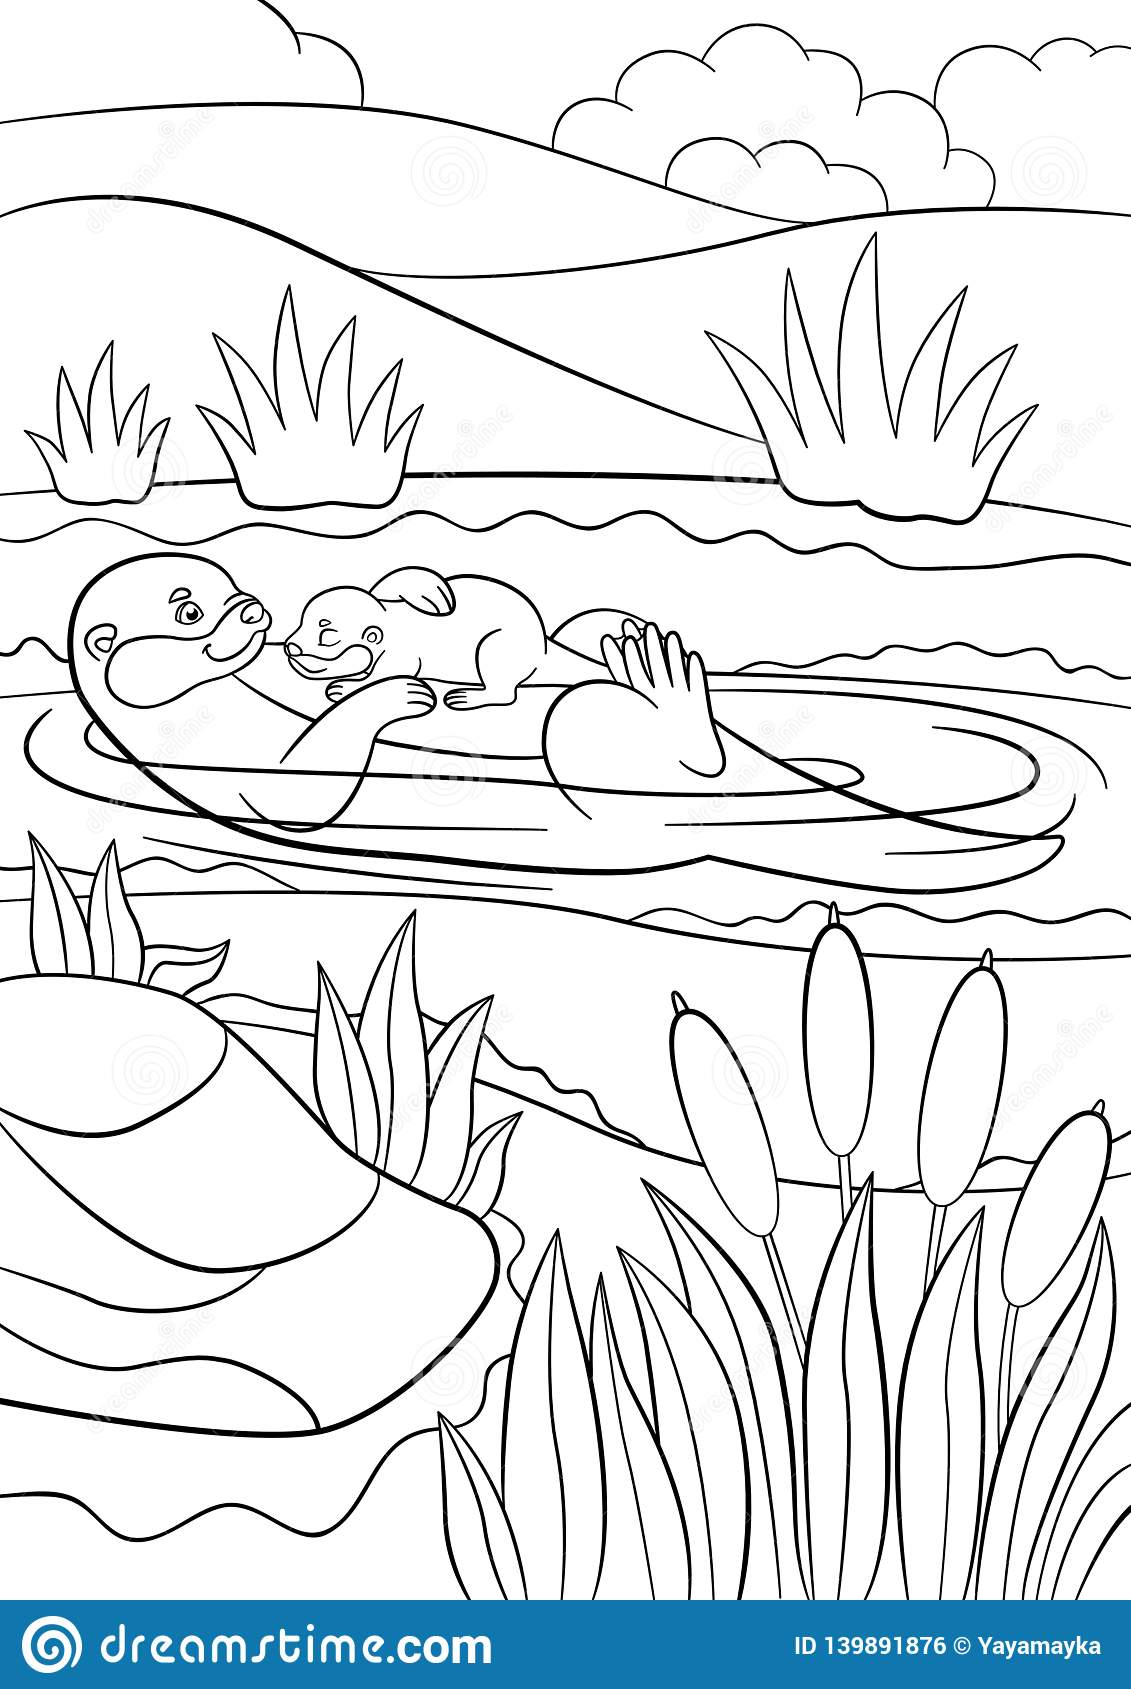 Coloring Pages. Mother Otter Swims With Her Little Cute Baby In ... | 1689x1131